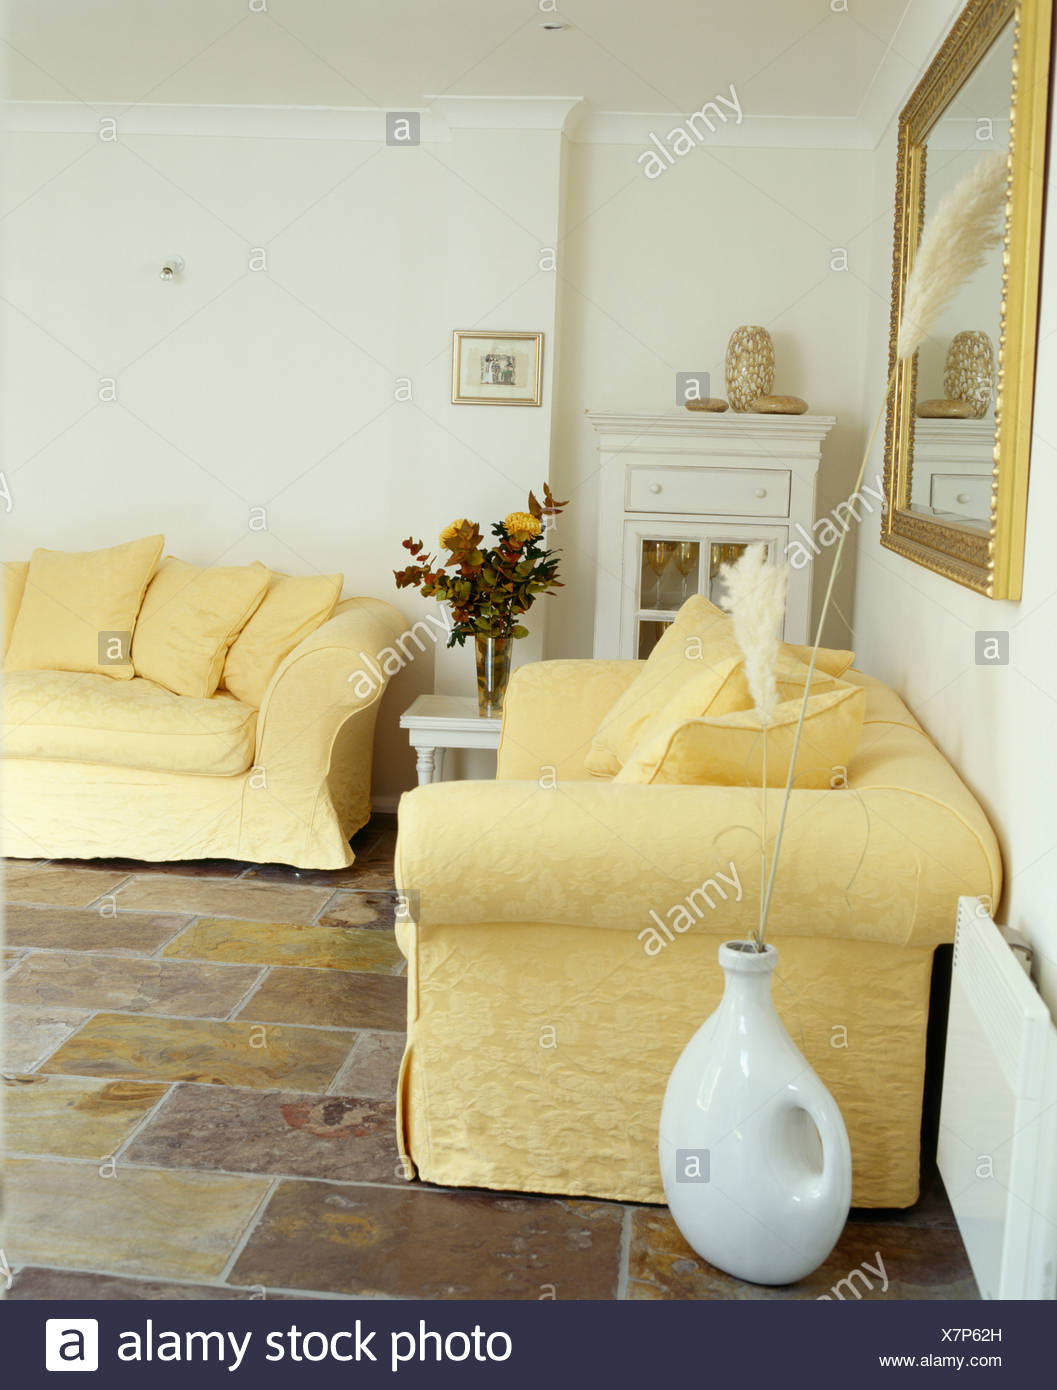 Pale Yellow Sofas In White Living Room With Slate Floor Tiles